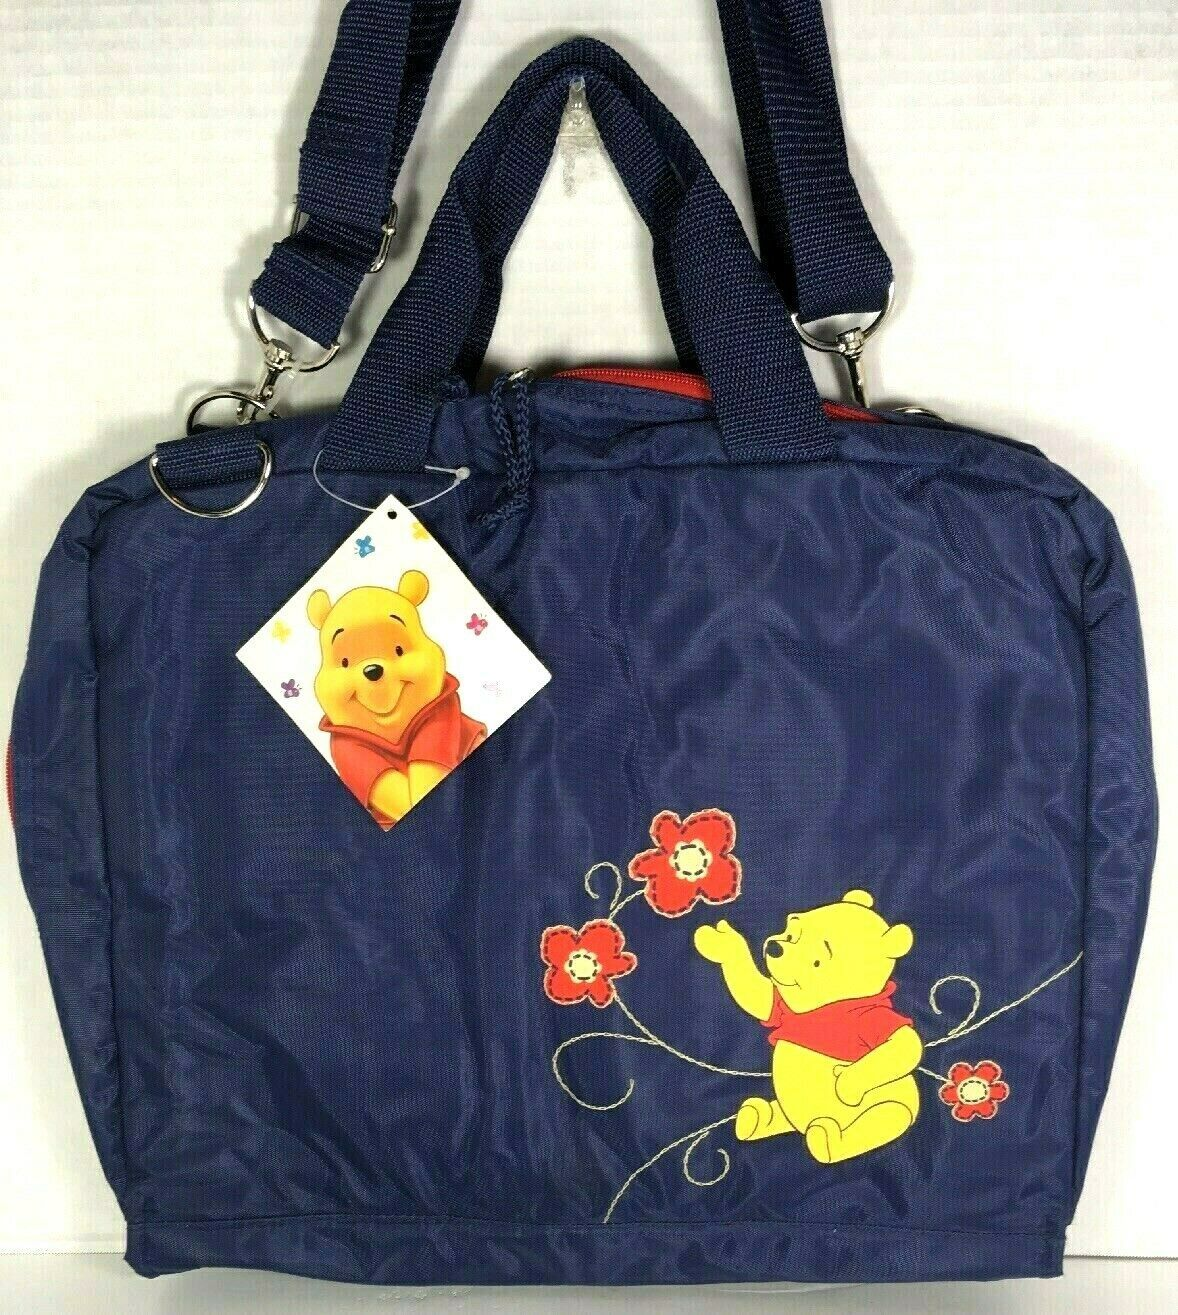 Winnie the Pooh Large Blue Nylon Travel Bag